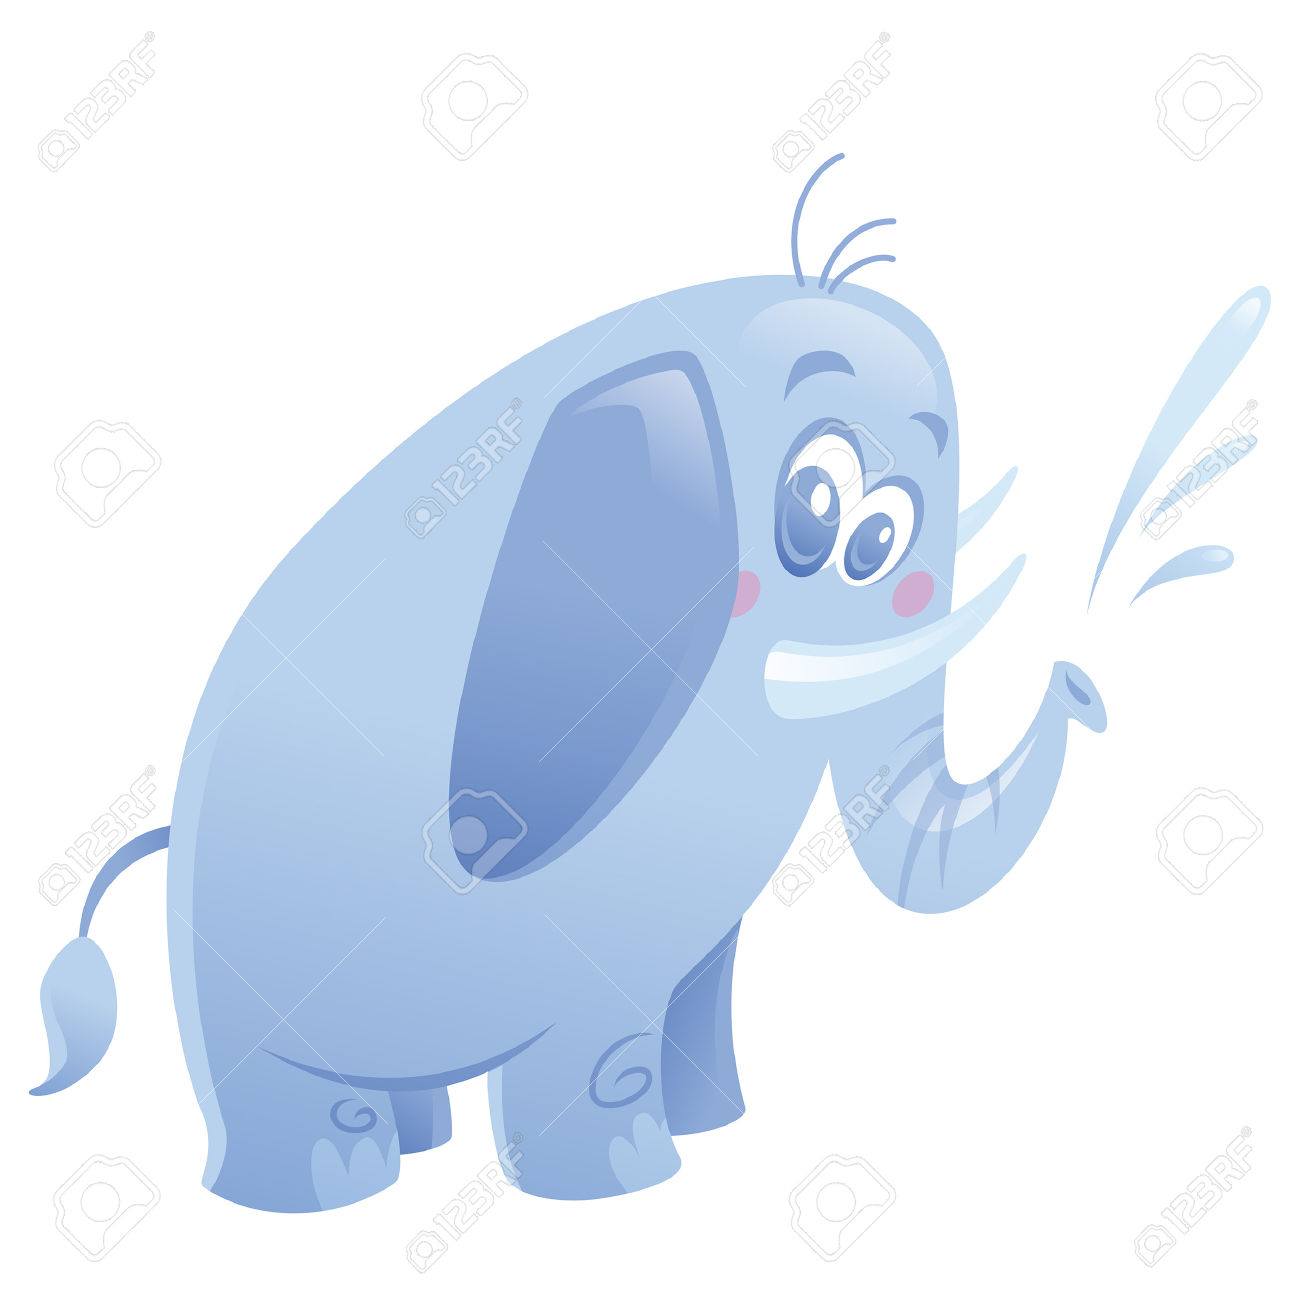 Cartoon Friendly Blue Elephant With Small Tusks Spitting Water.